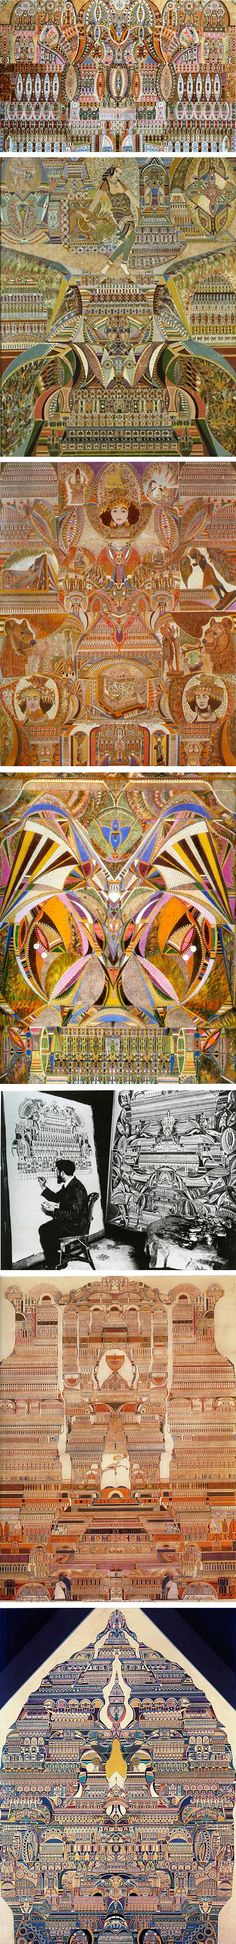 Augustin Lesage. Coal miner turned kaleidoscopic painter.